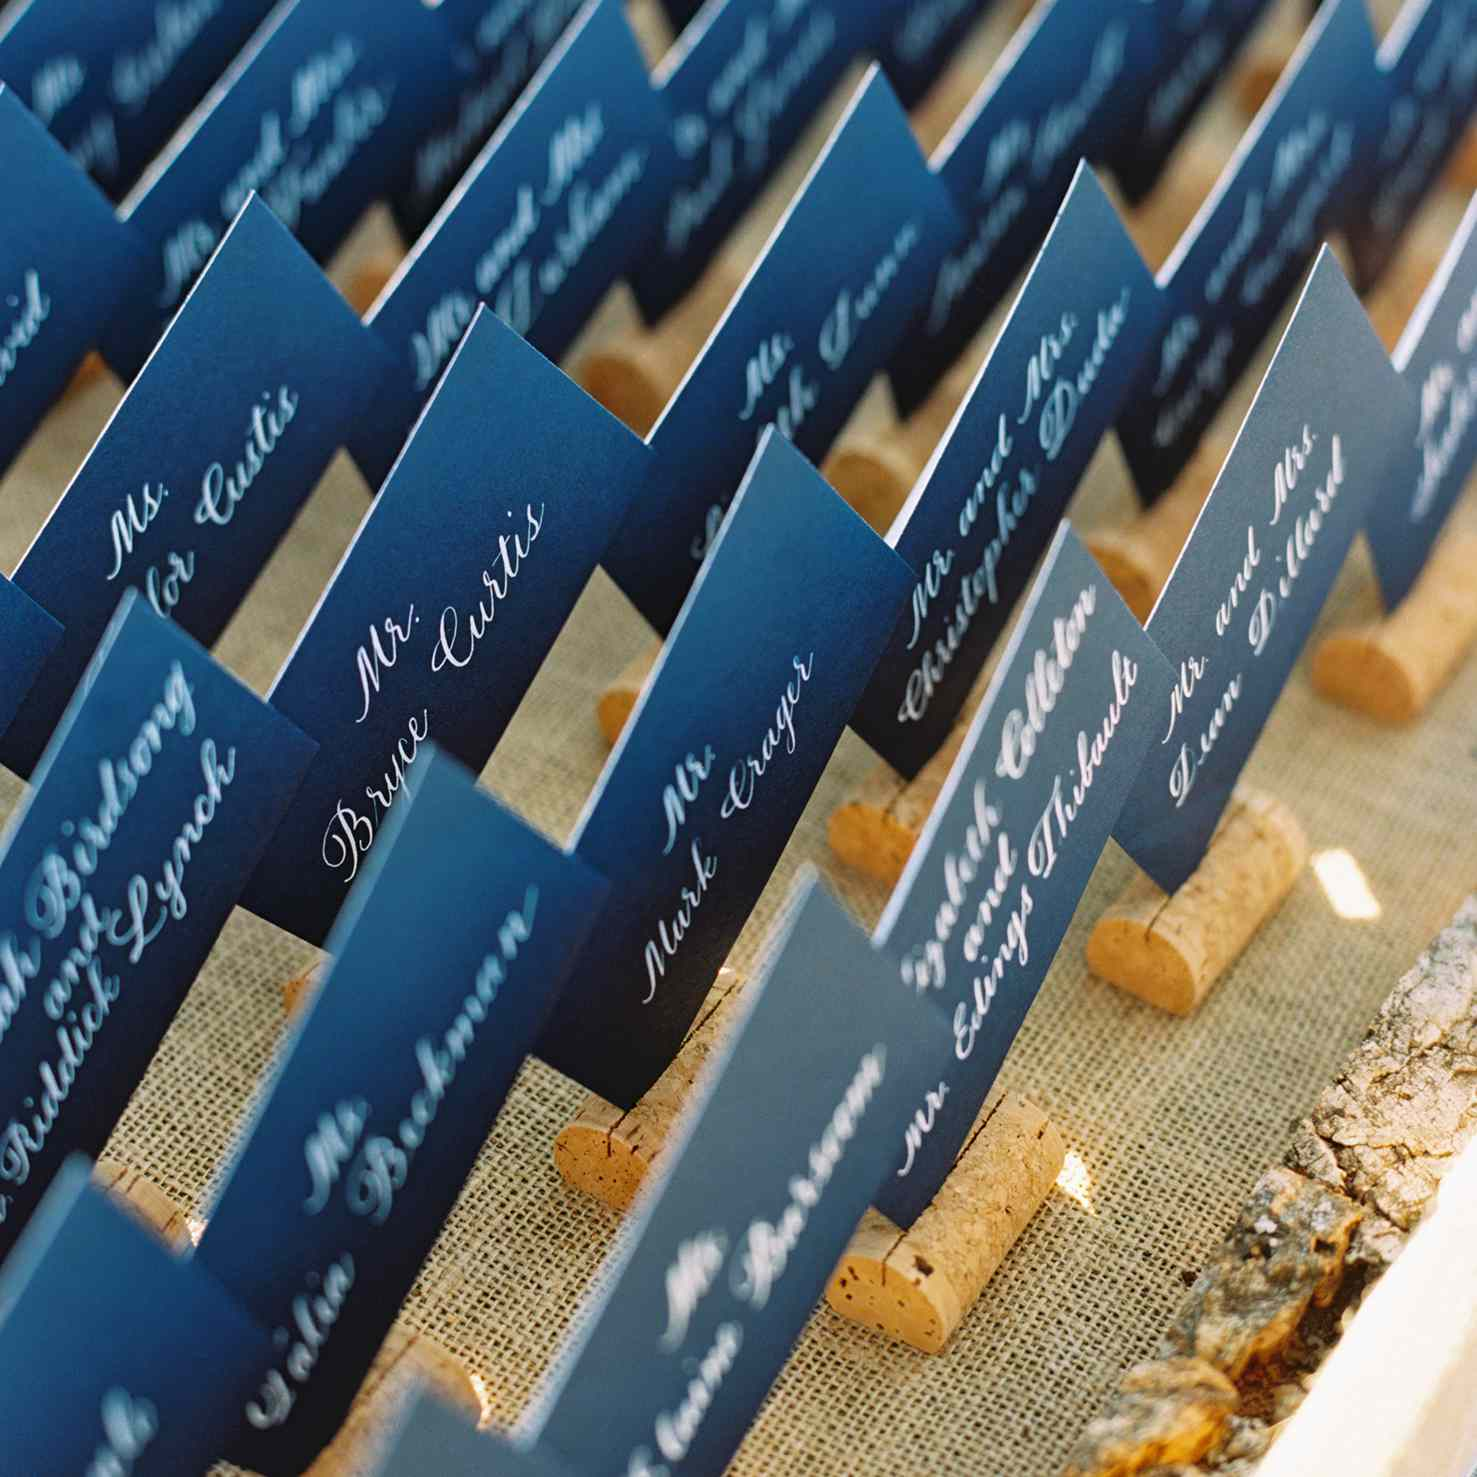 Guest name cards on corks